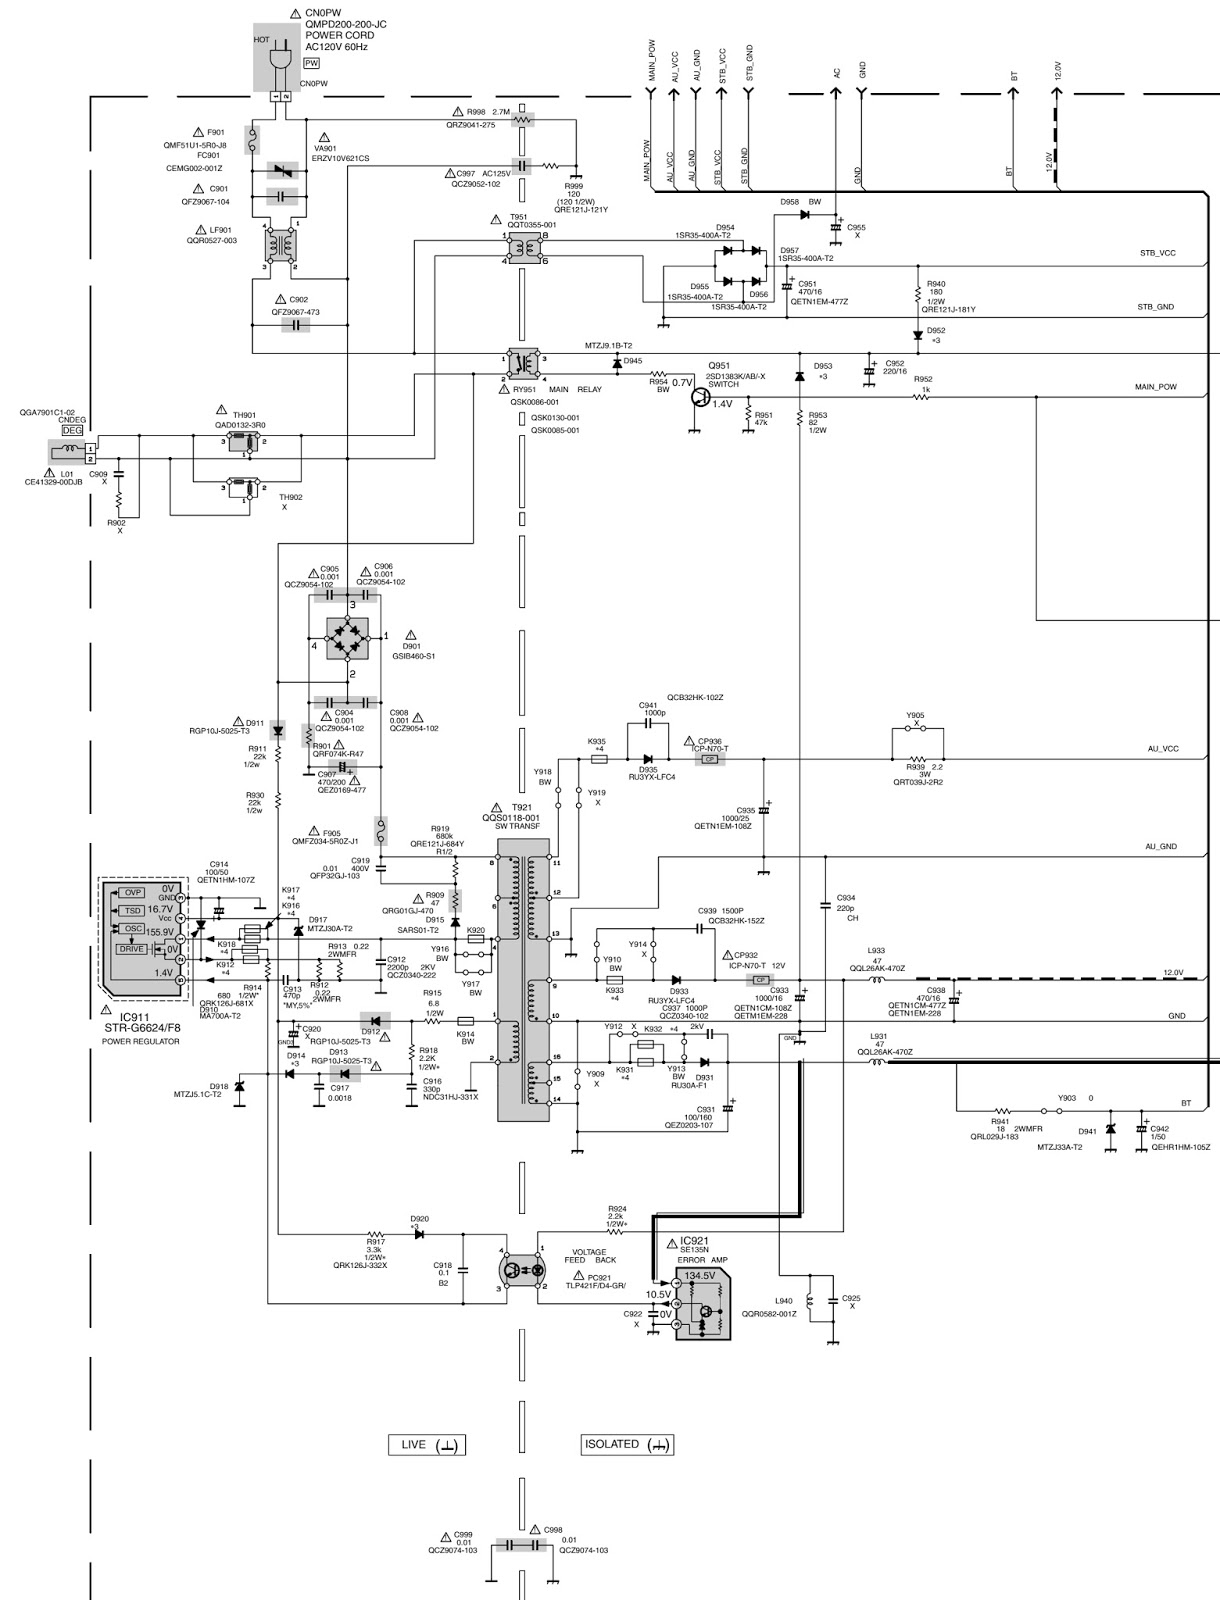 1.bmp bodine emergency ballast wiring diagram & bodine emergency ballast bodine b90 emergency ballast wiring diagram at gsmx.co